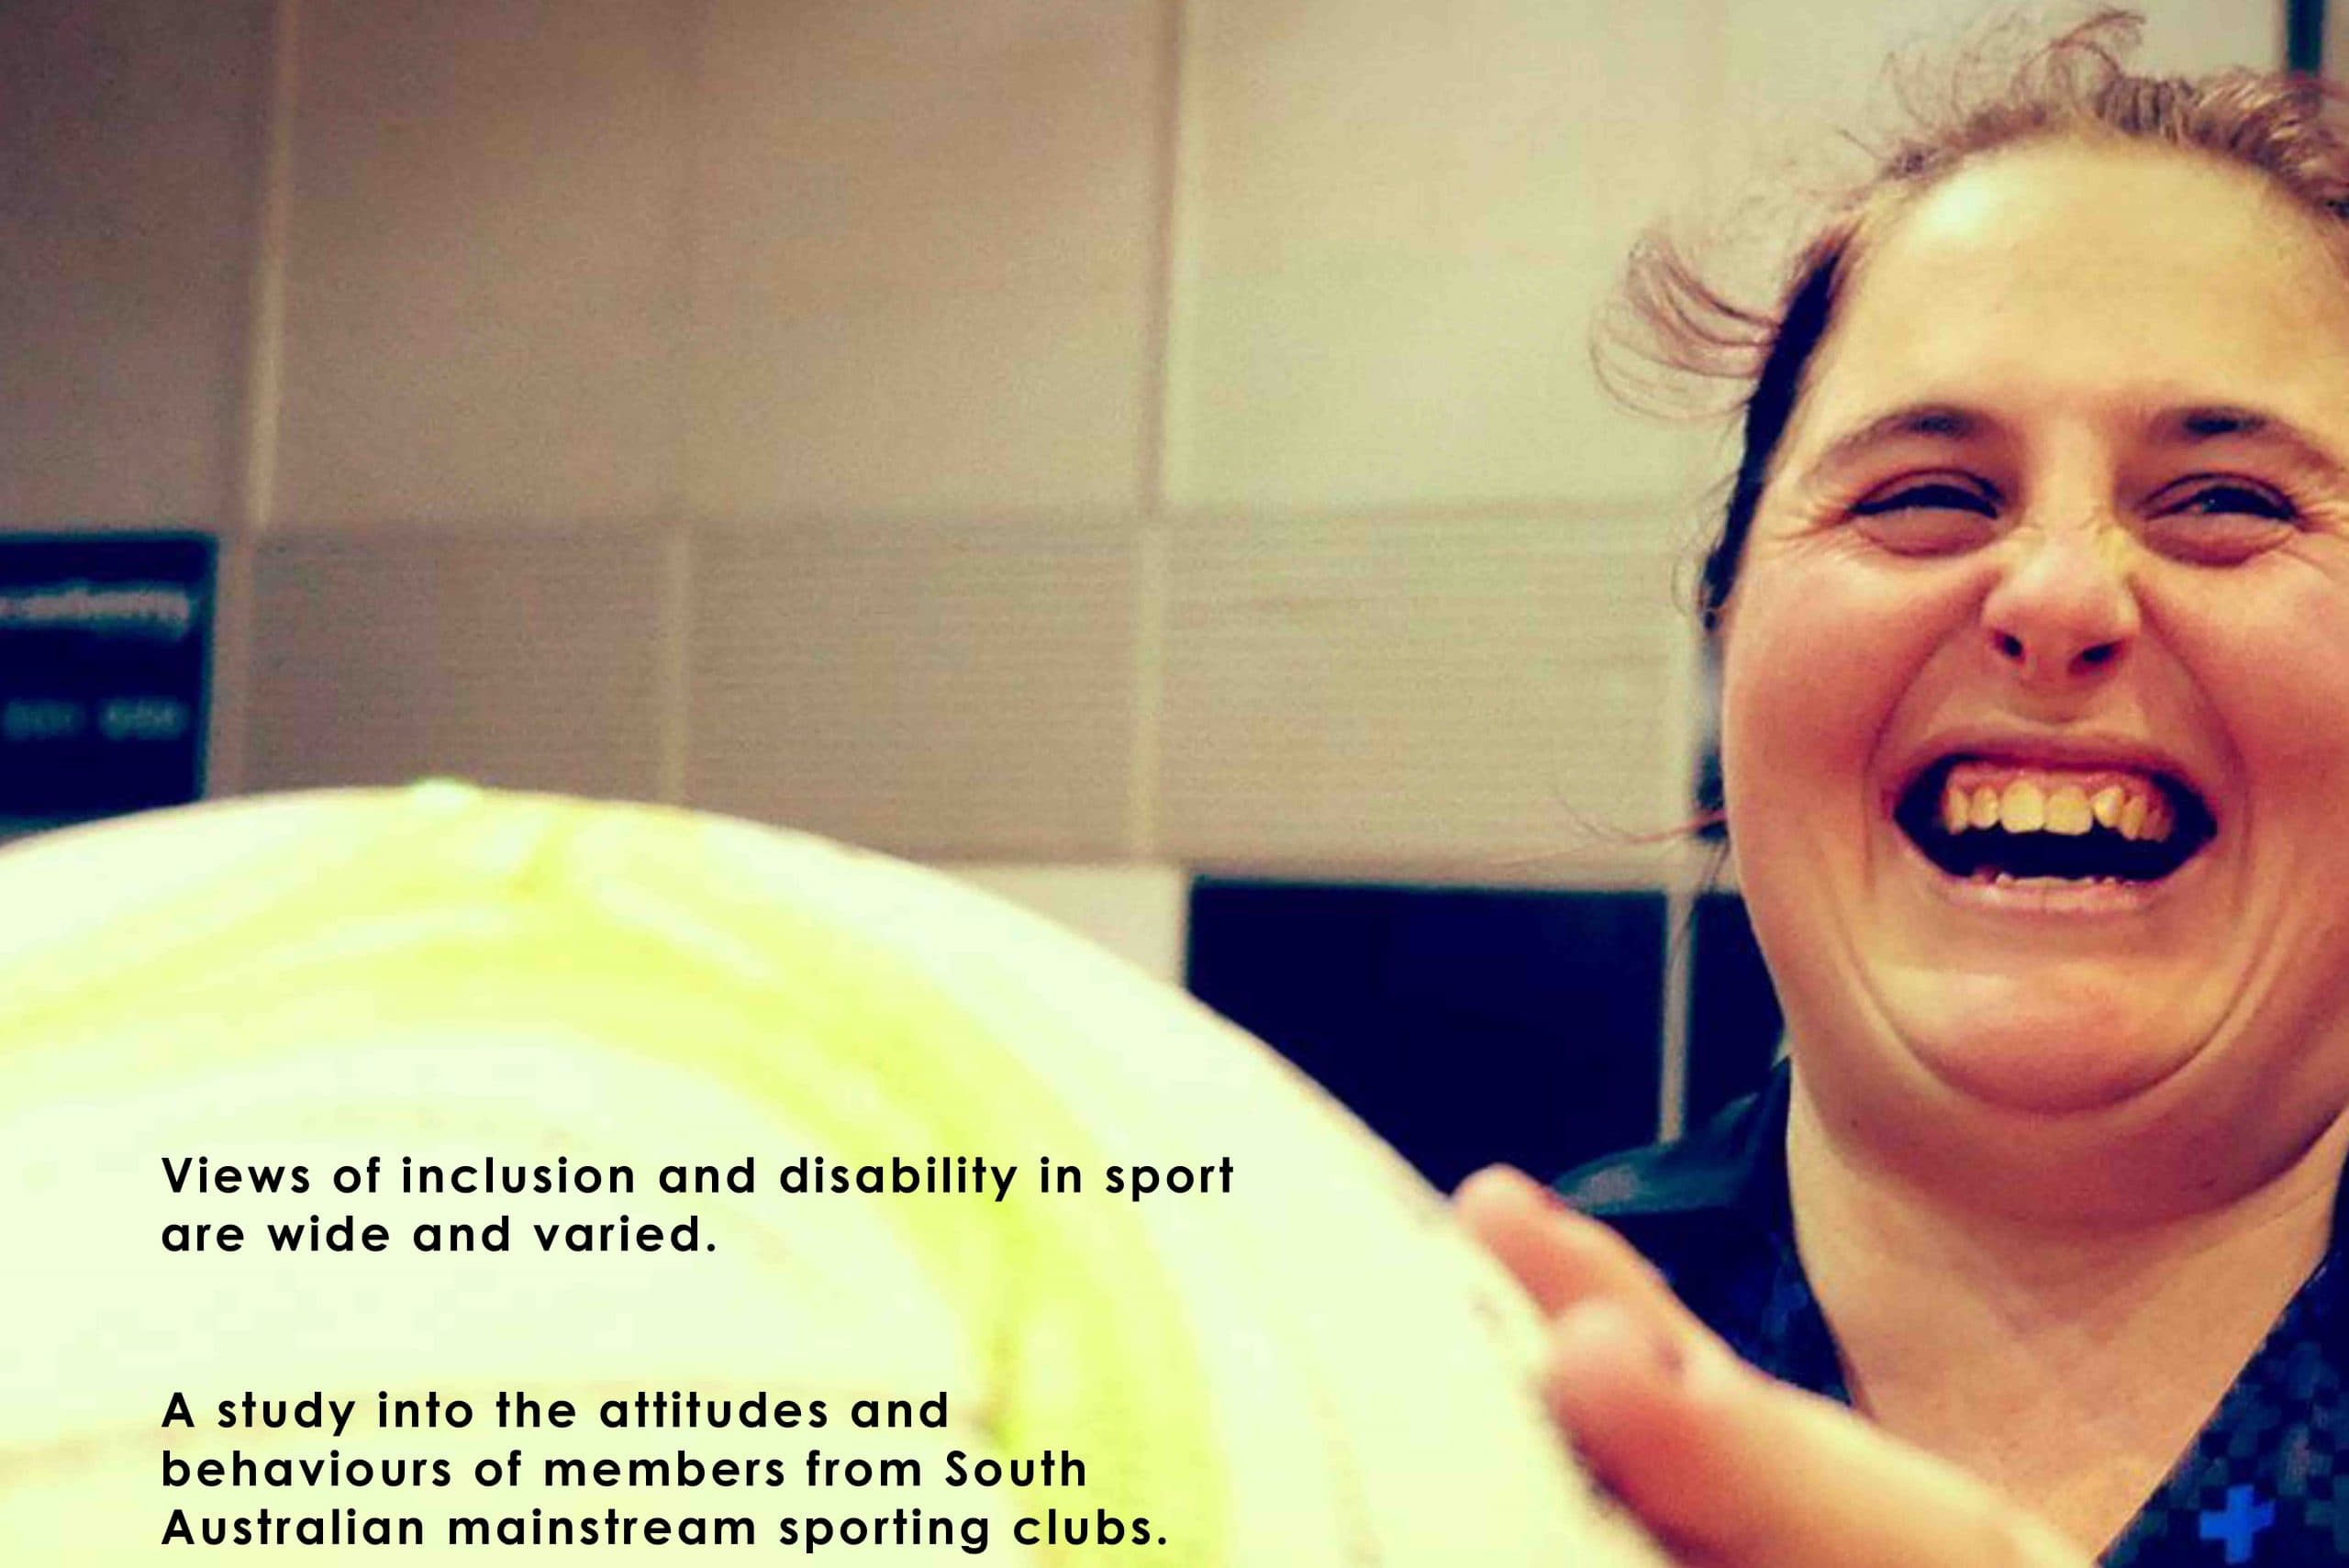 Image of a woman laughing and holding a netball in front of her. Text reads - views of inclusion and disability in sport are wide and varied. A study into the attitudes and behaviours of members from South Australian mainstream sporting clubs